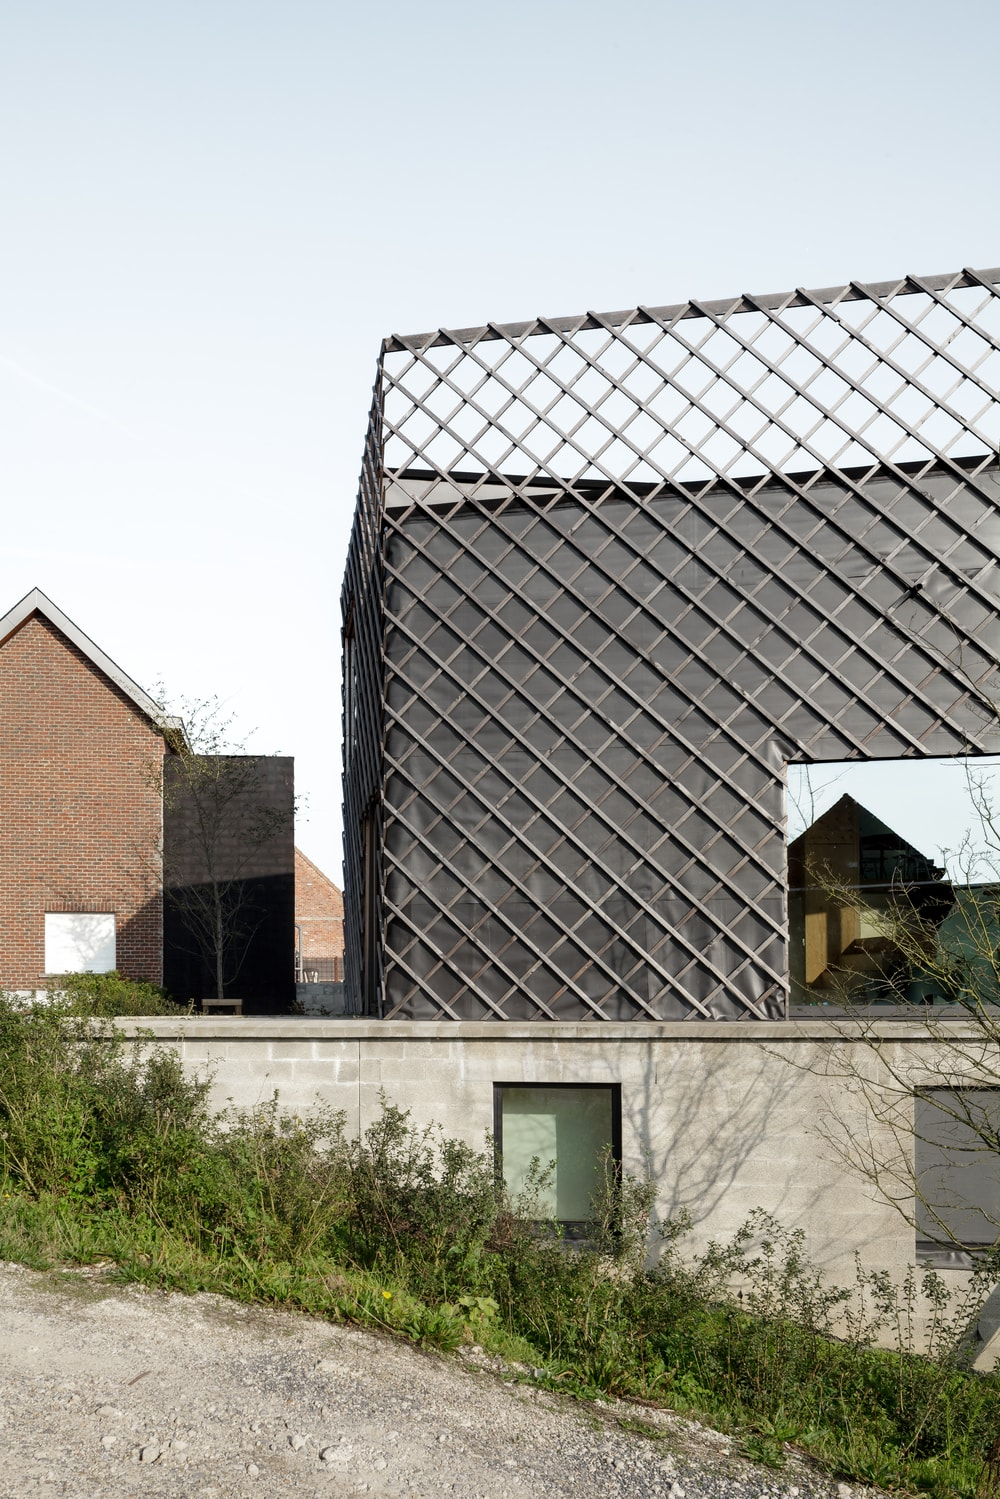 This closer look at the house features more of the patterned railings and how it extended to be a design for the exterior walls for a unique texture.